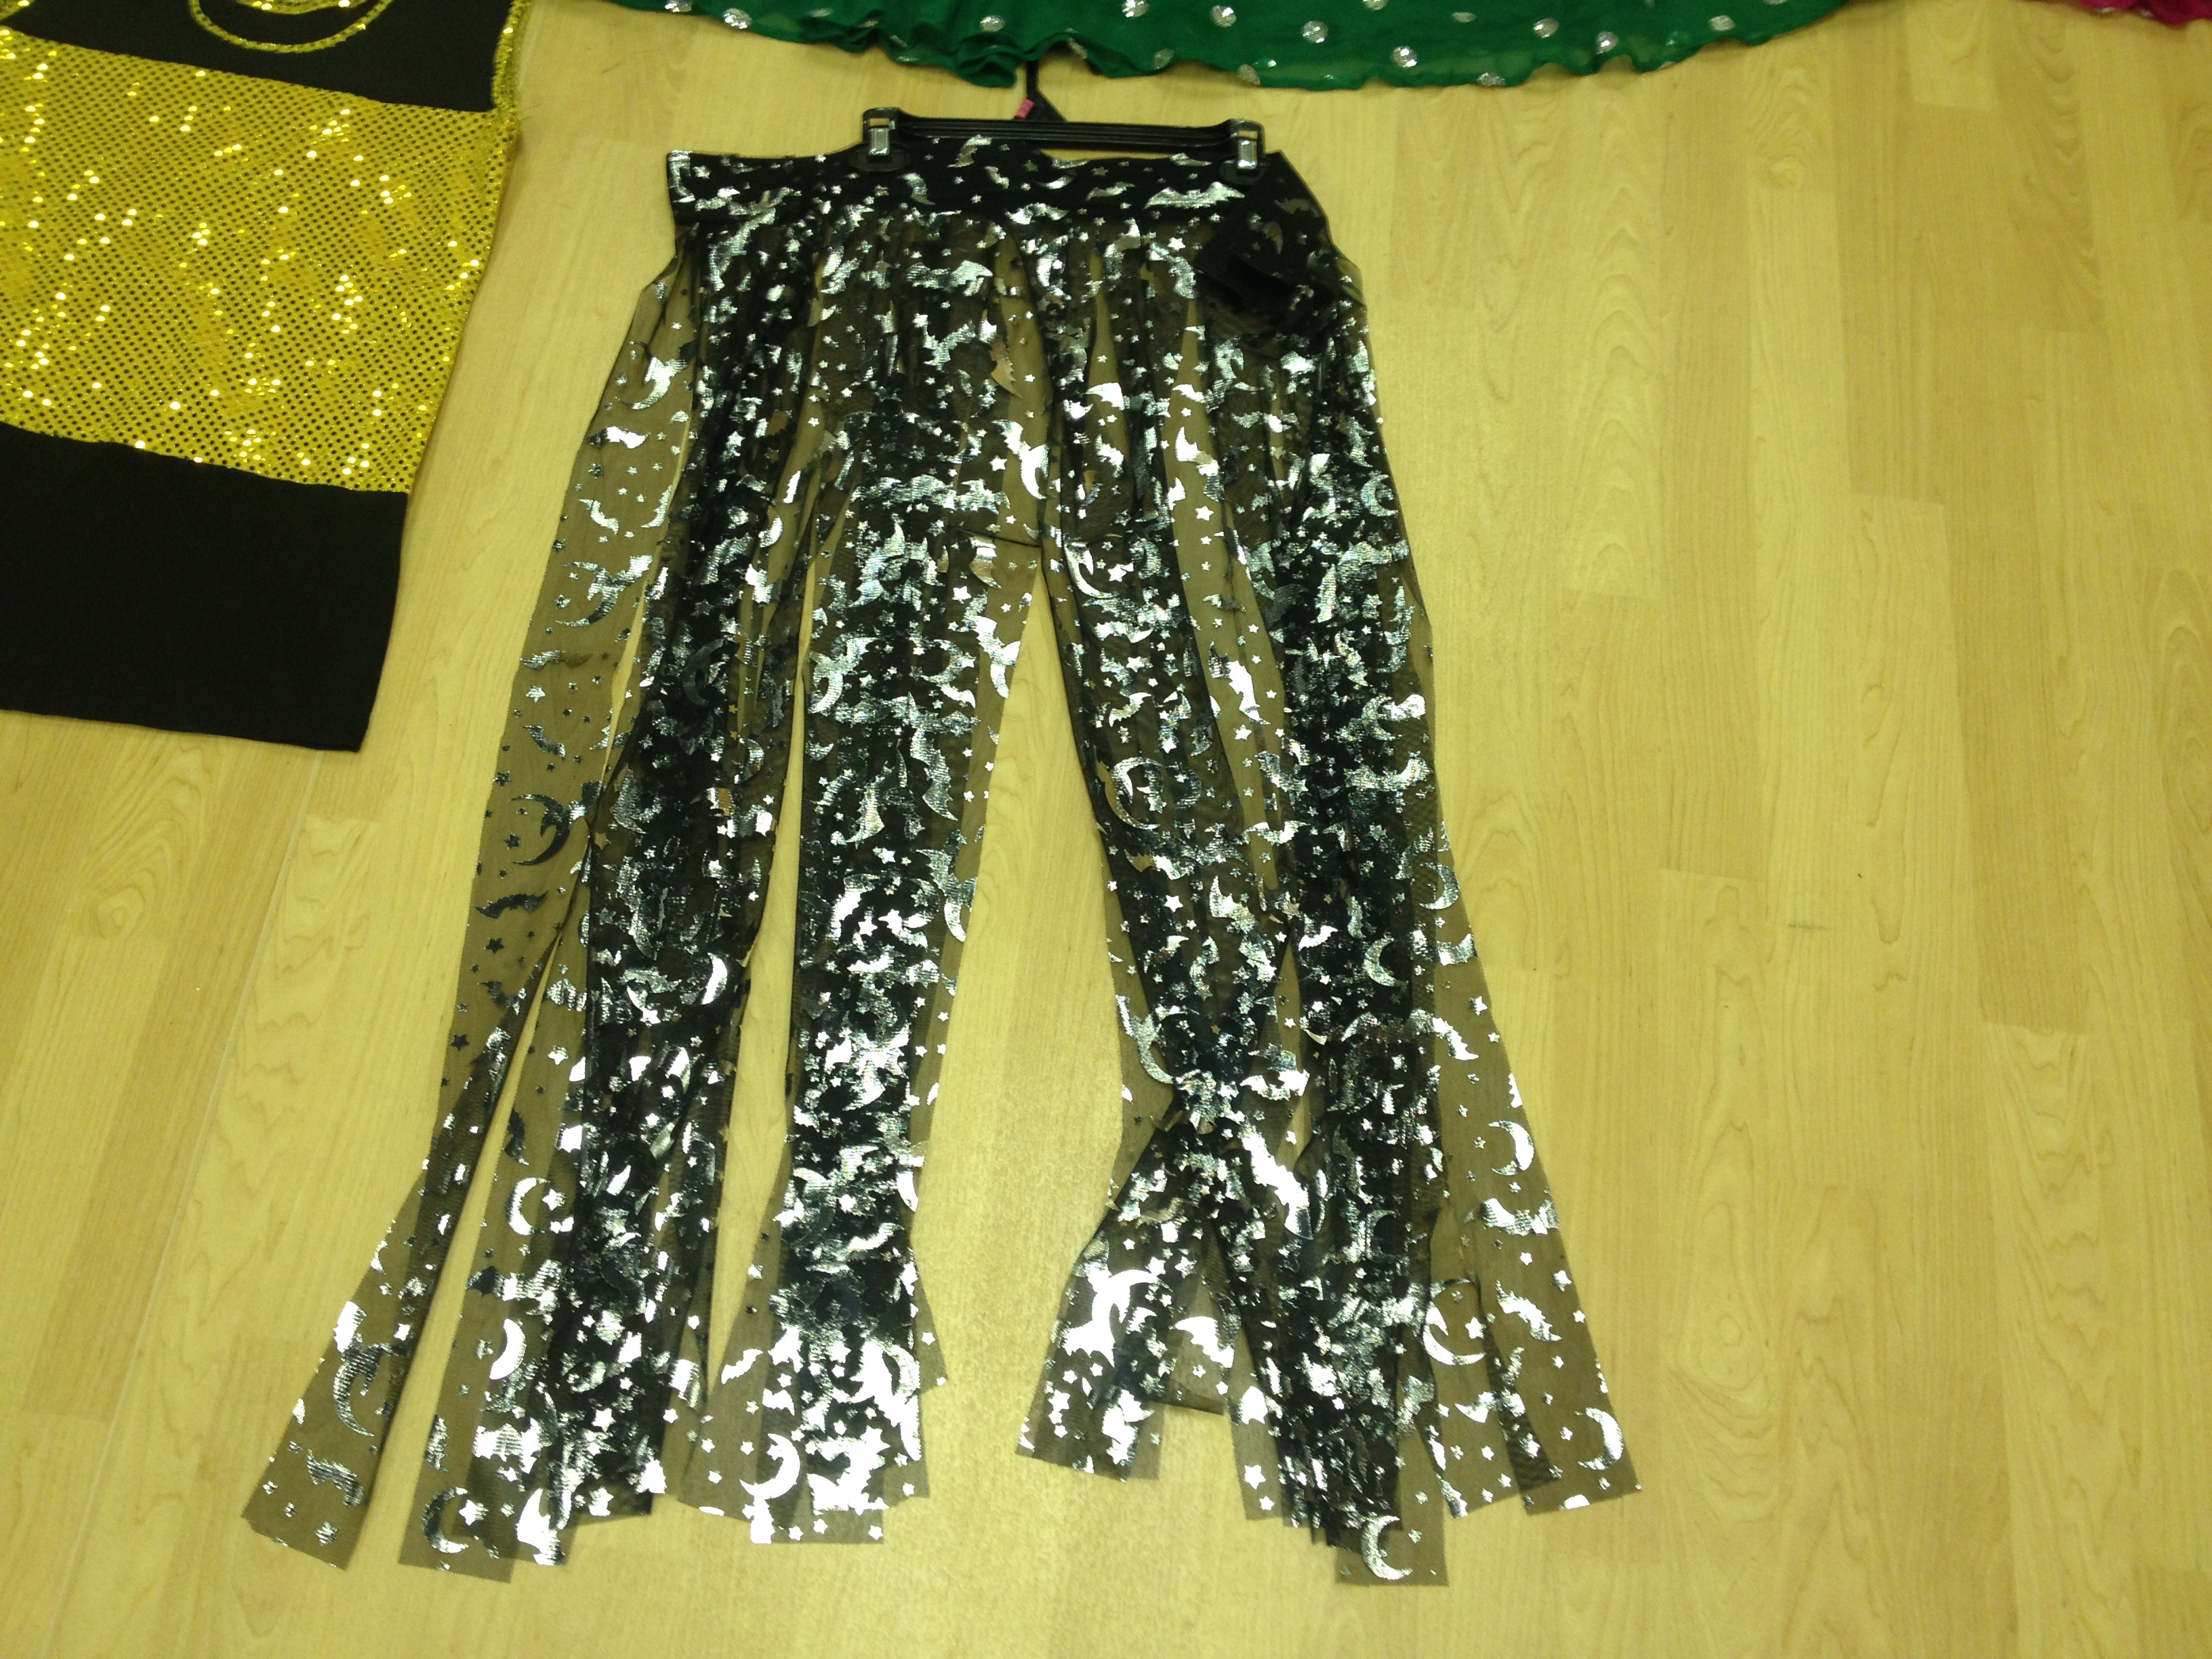 Silver Foil Black Strips Skirt